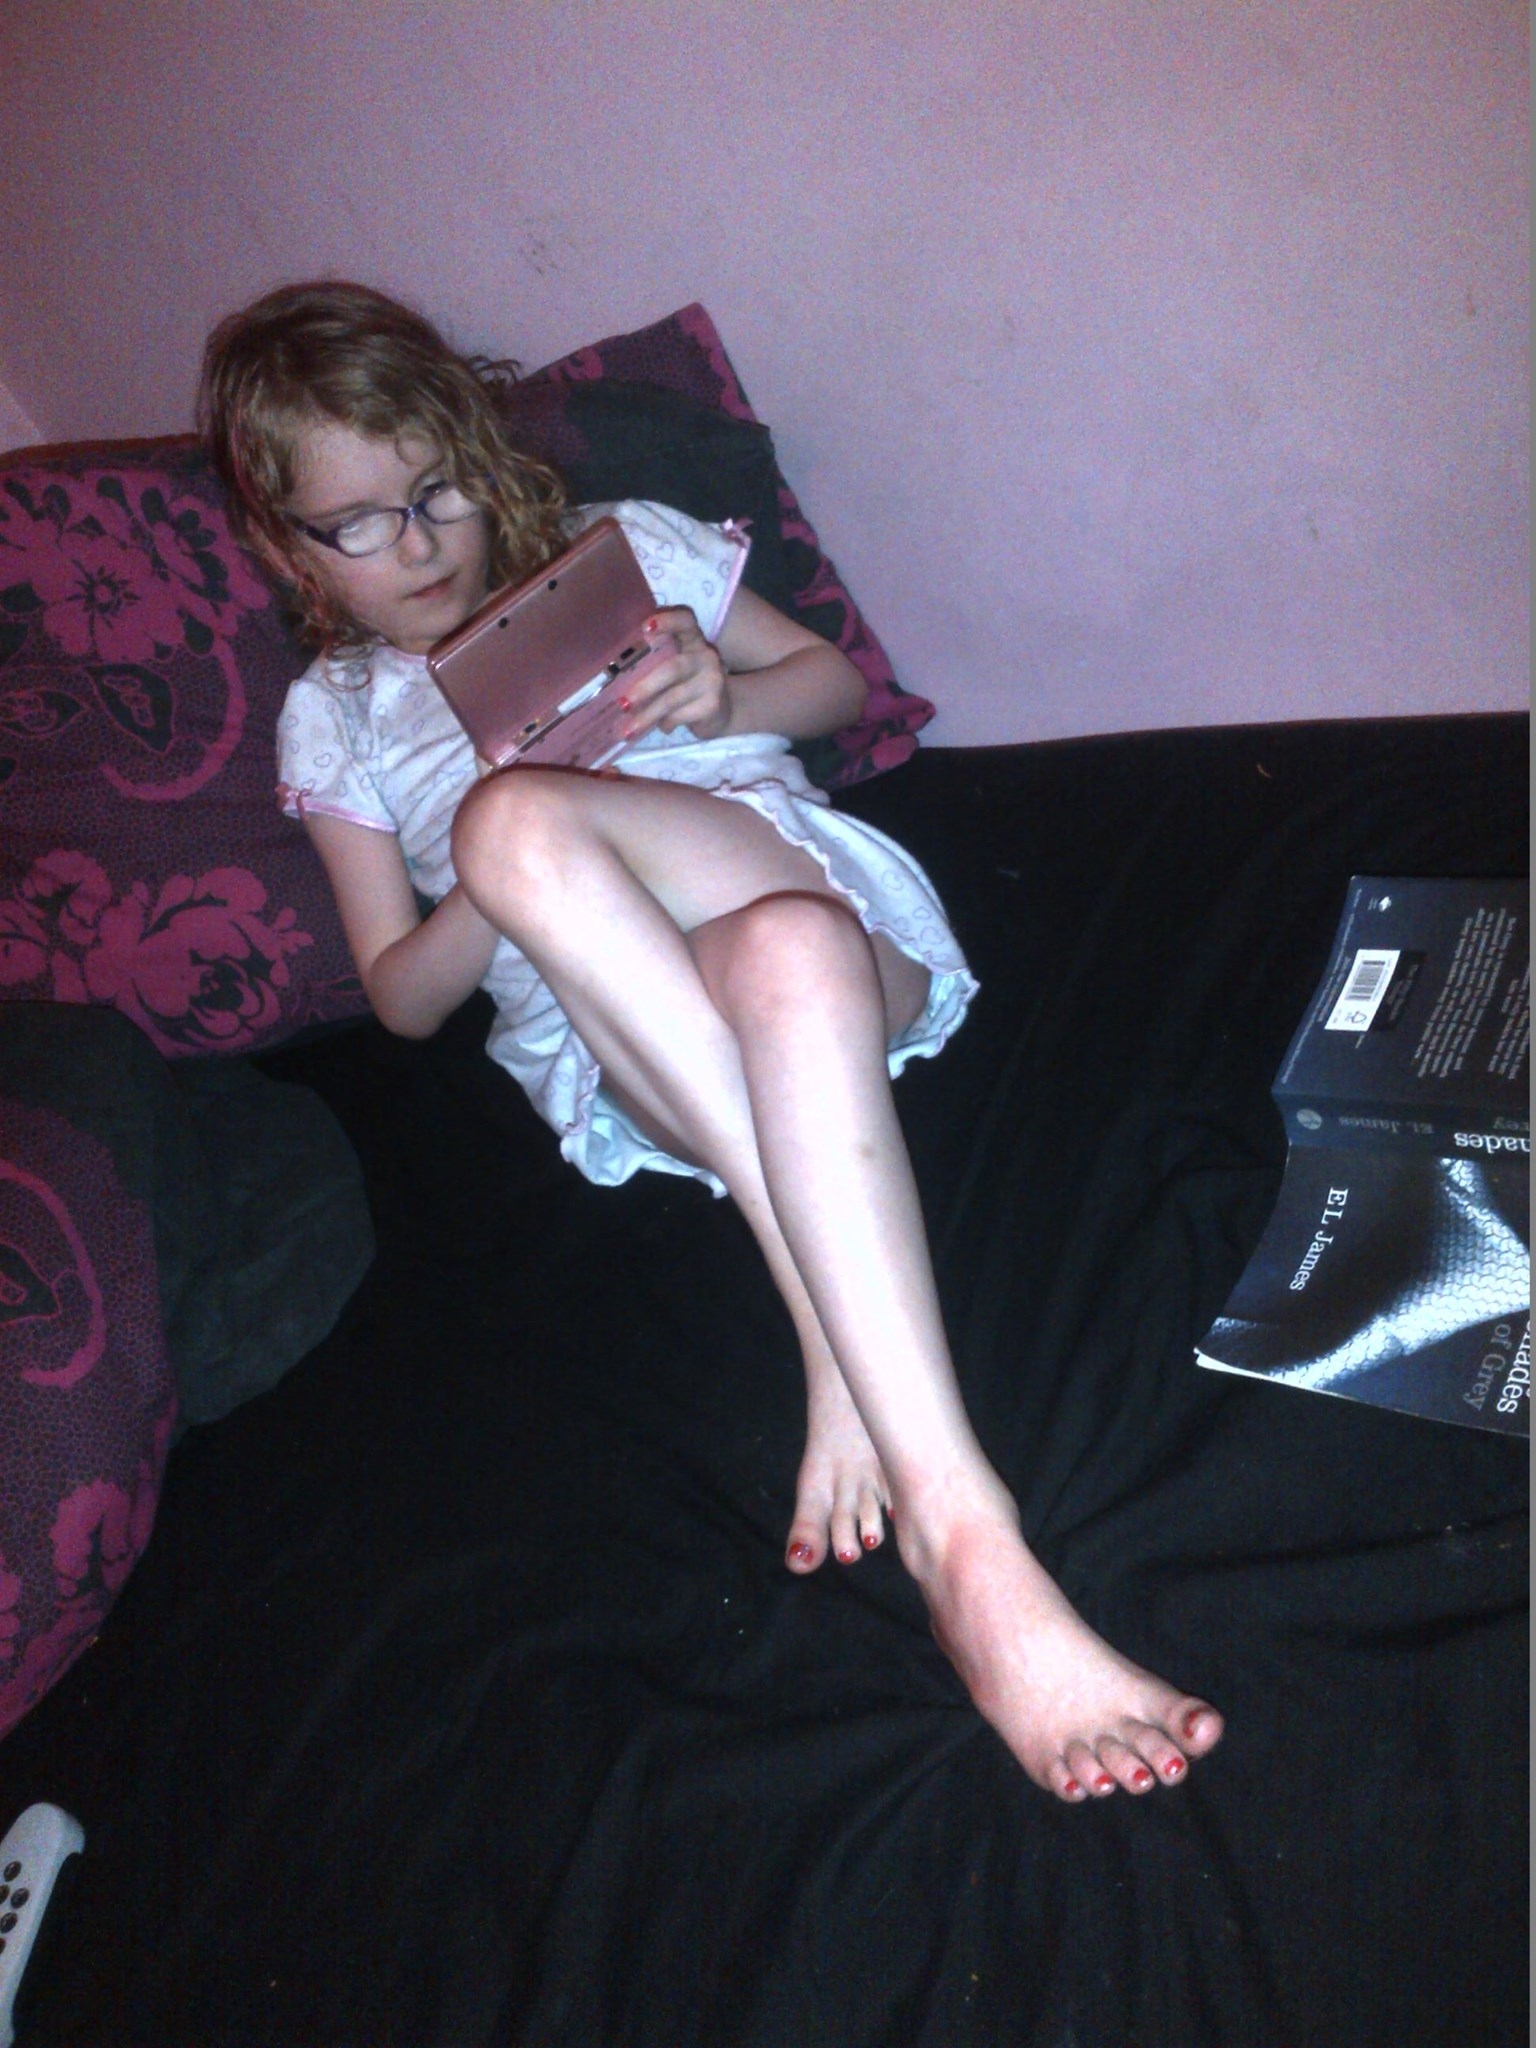 orla doing her favourite thing - playing on her nintendo 3ds